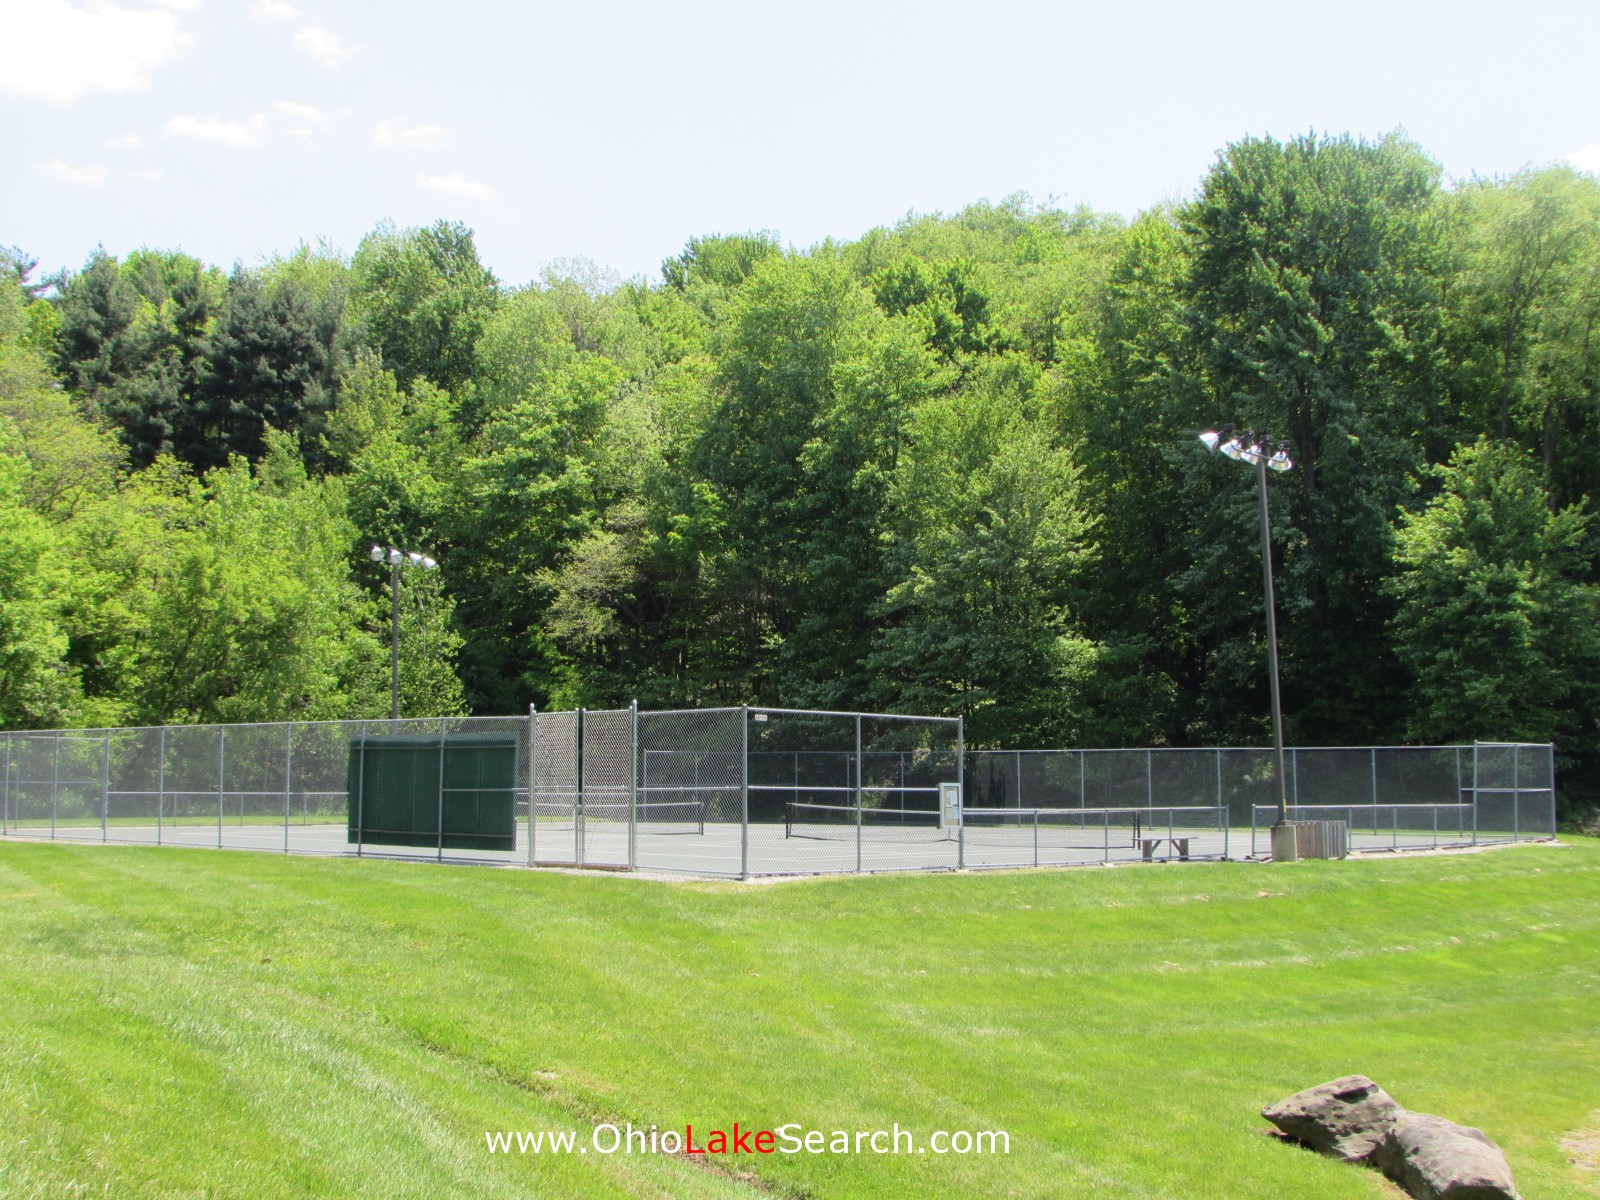 Lake Mohawk Ohio Tennis Courts